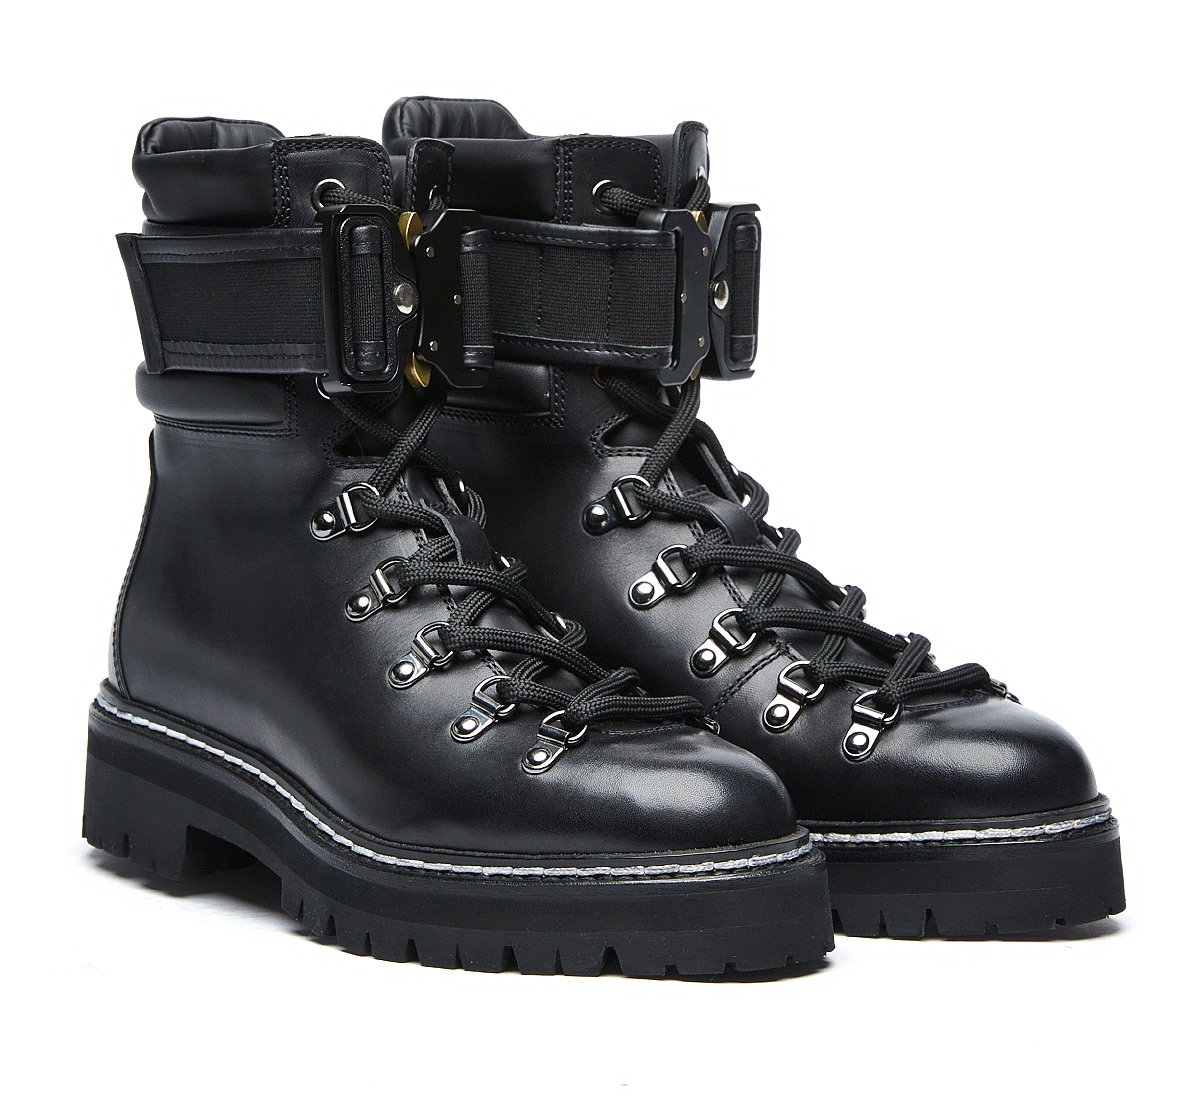 Barracuda commando boots in luxury calf leather